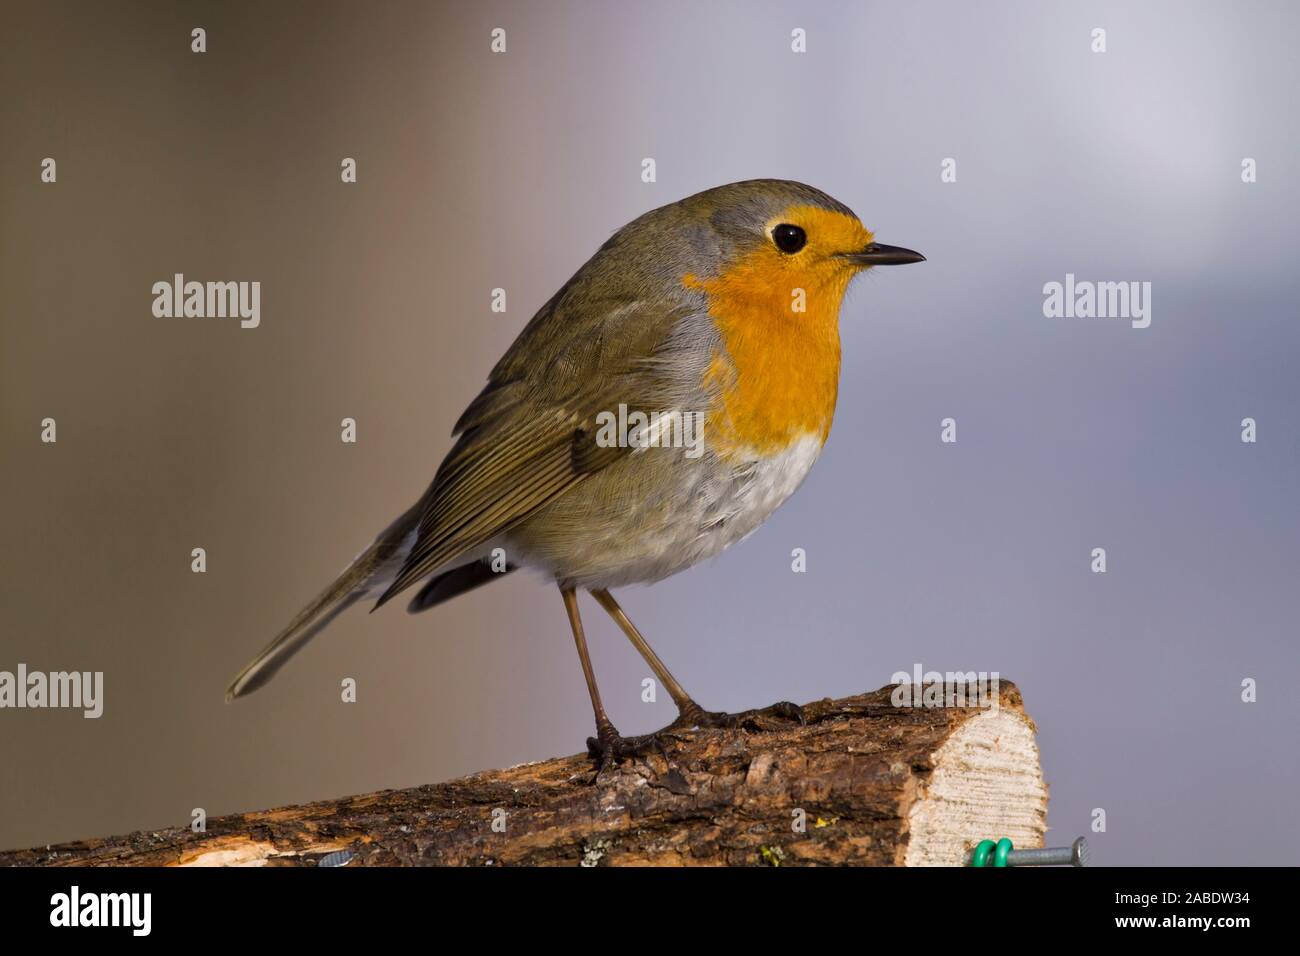 Rotkehlchen (Erithacus rubecula) Stock Photo